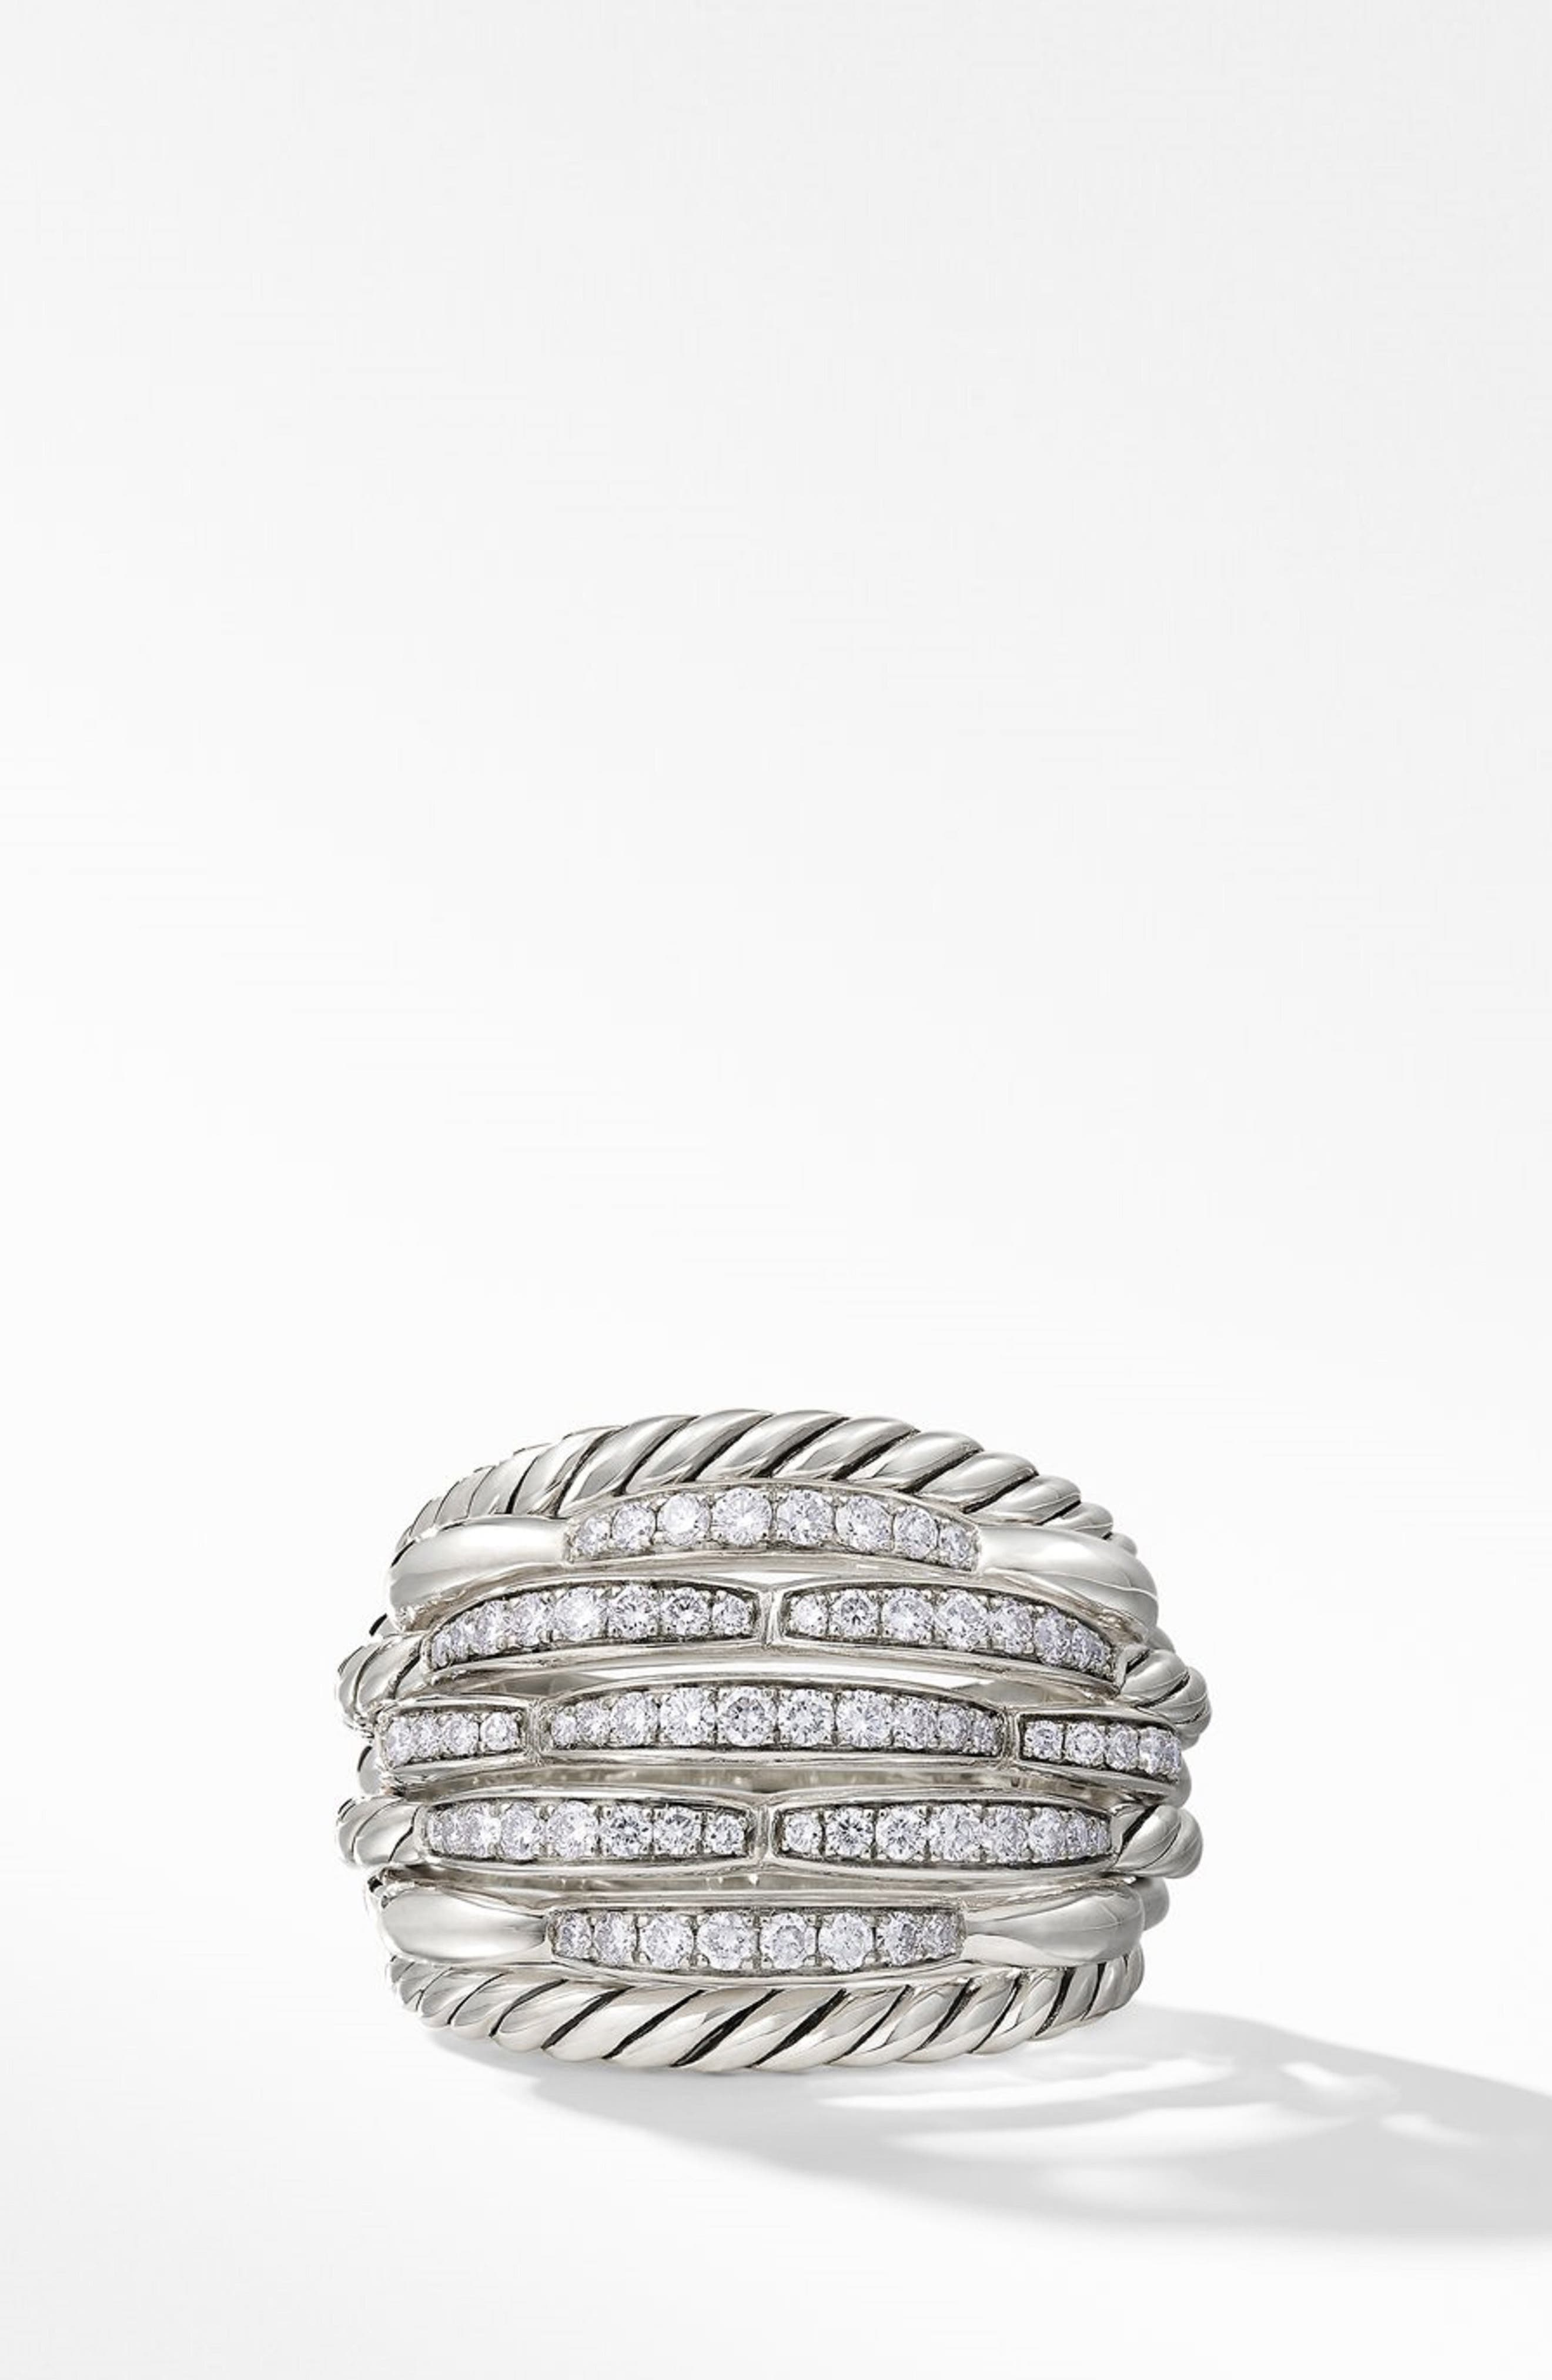 Tides 20mm Dome Ring with Diamonds,                             Alternate thumbnail 3, color,                             STERLING SILVER/ DIAMOND